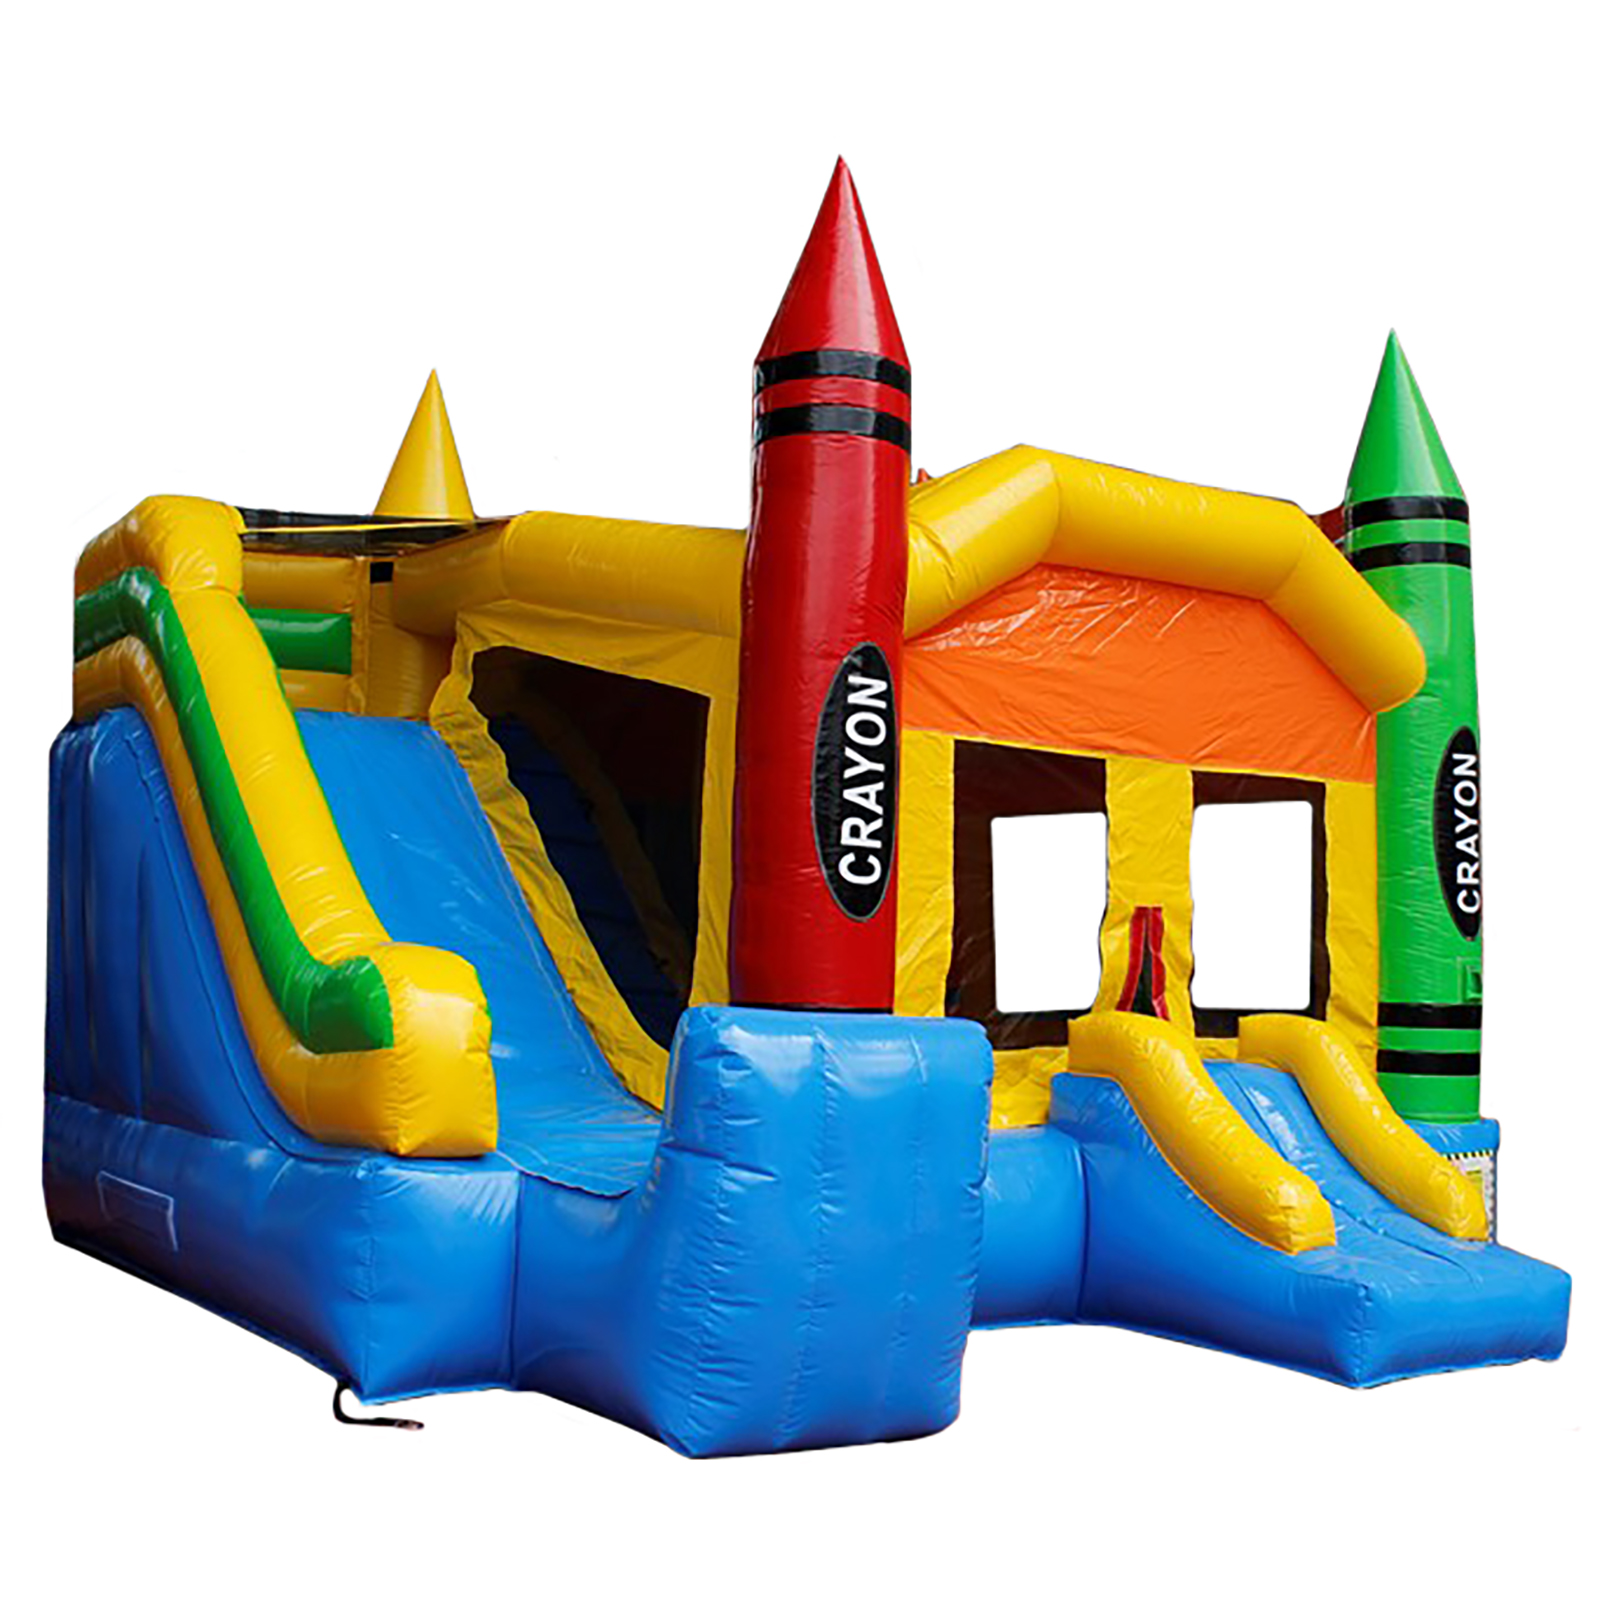 Crayon Theme Inflatable Waterslide Combo Commercial Bounce House by